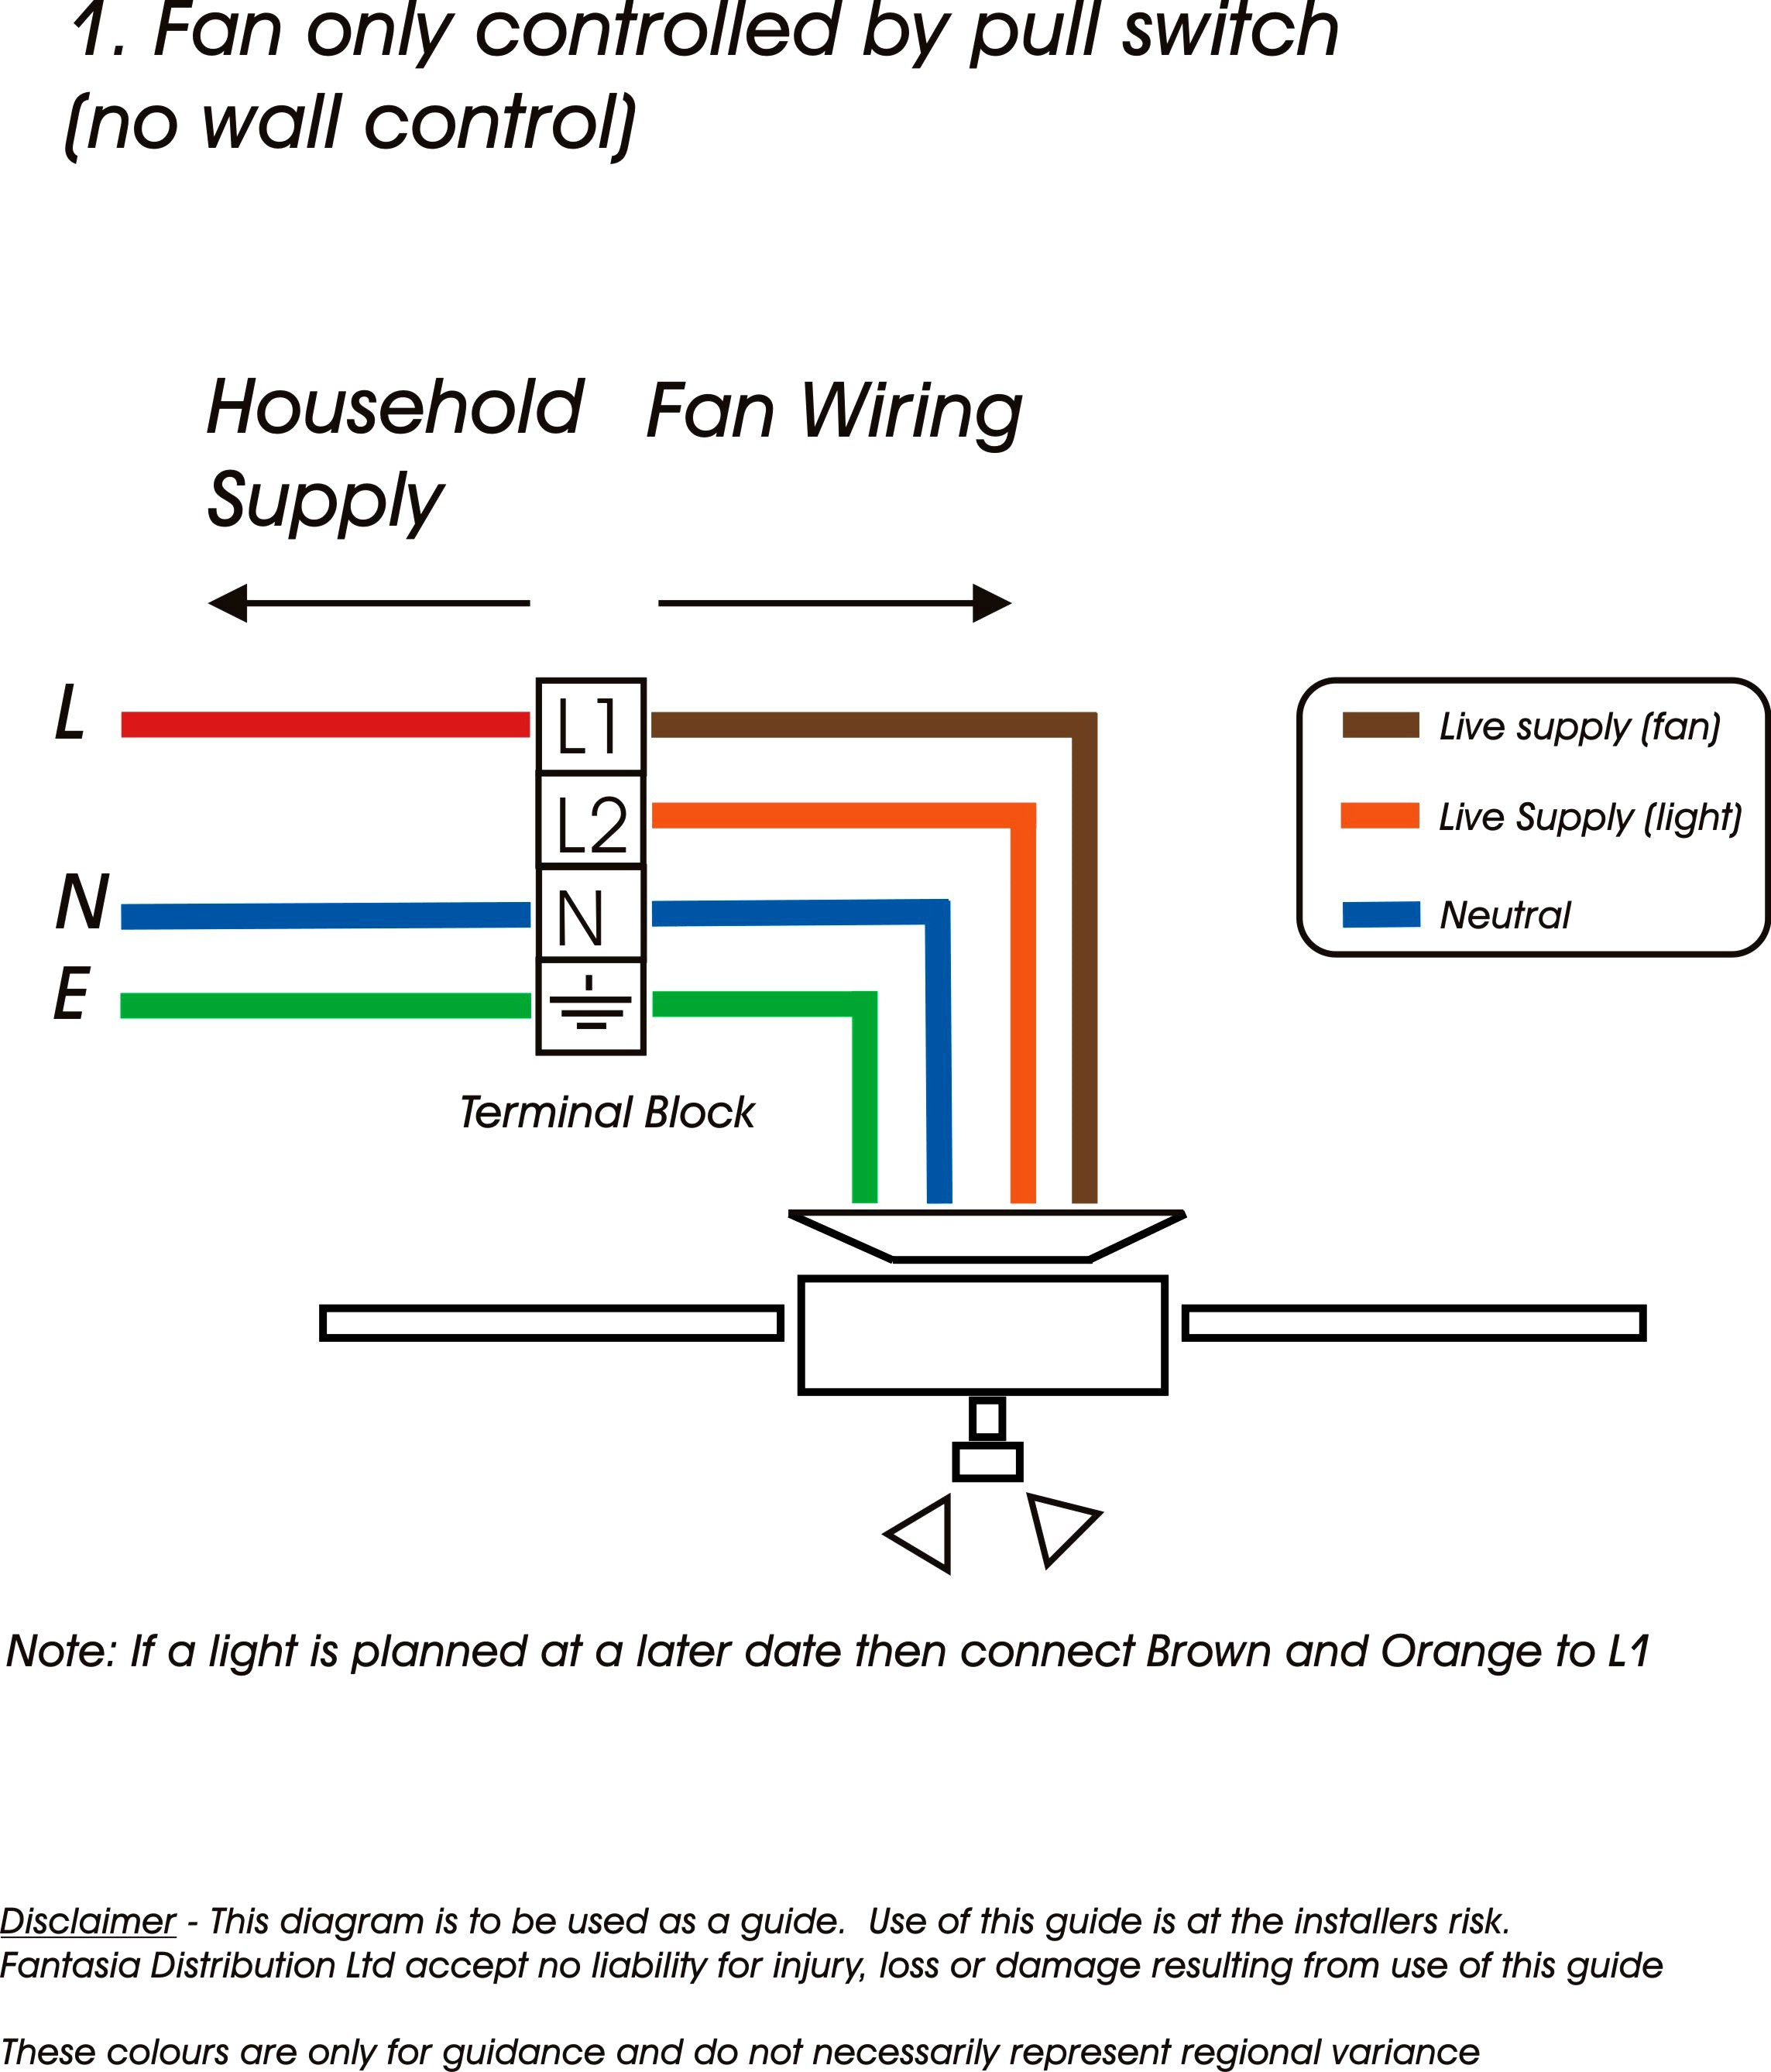 ceiling fan wiring diagram 3 speed Download-Ceiling Fan Pull Switch Chain 3 Speed Replacement Light Fixture And Wiring Diagram 0 10-g